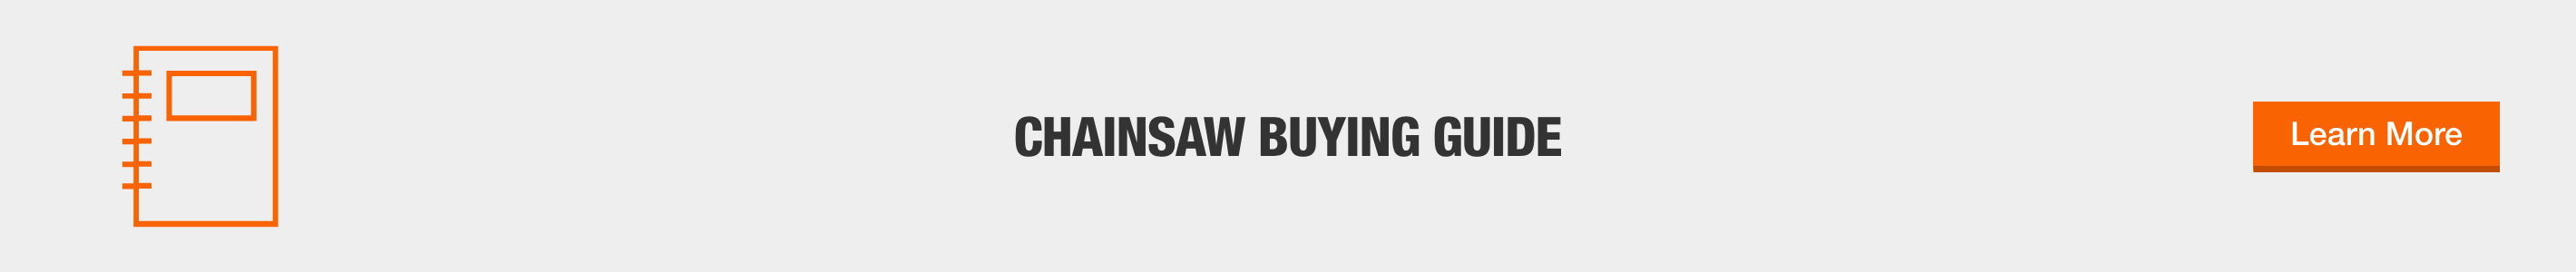 CHAINSAW BUYING GUIDE - Explore Now